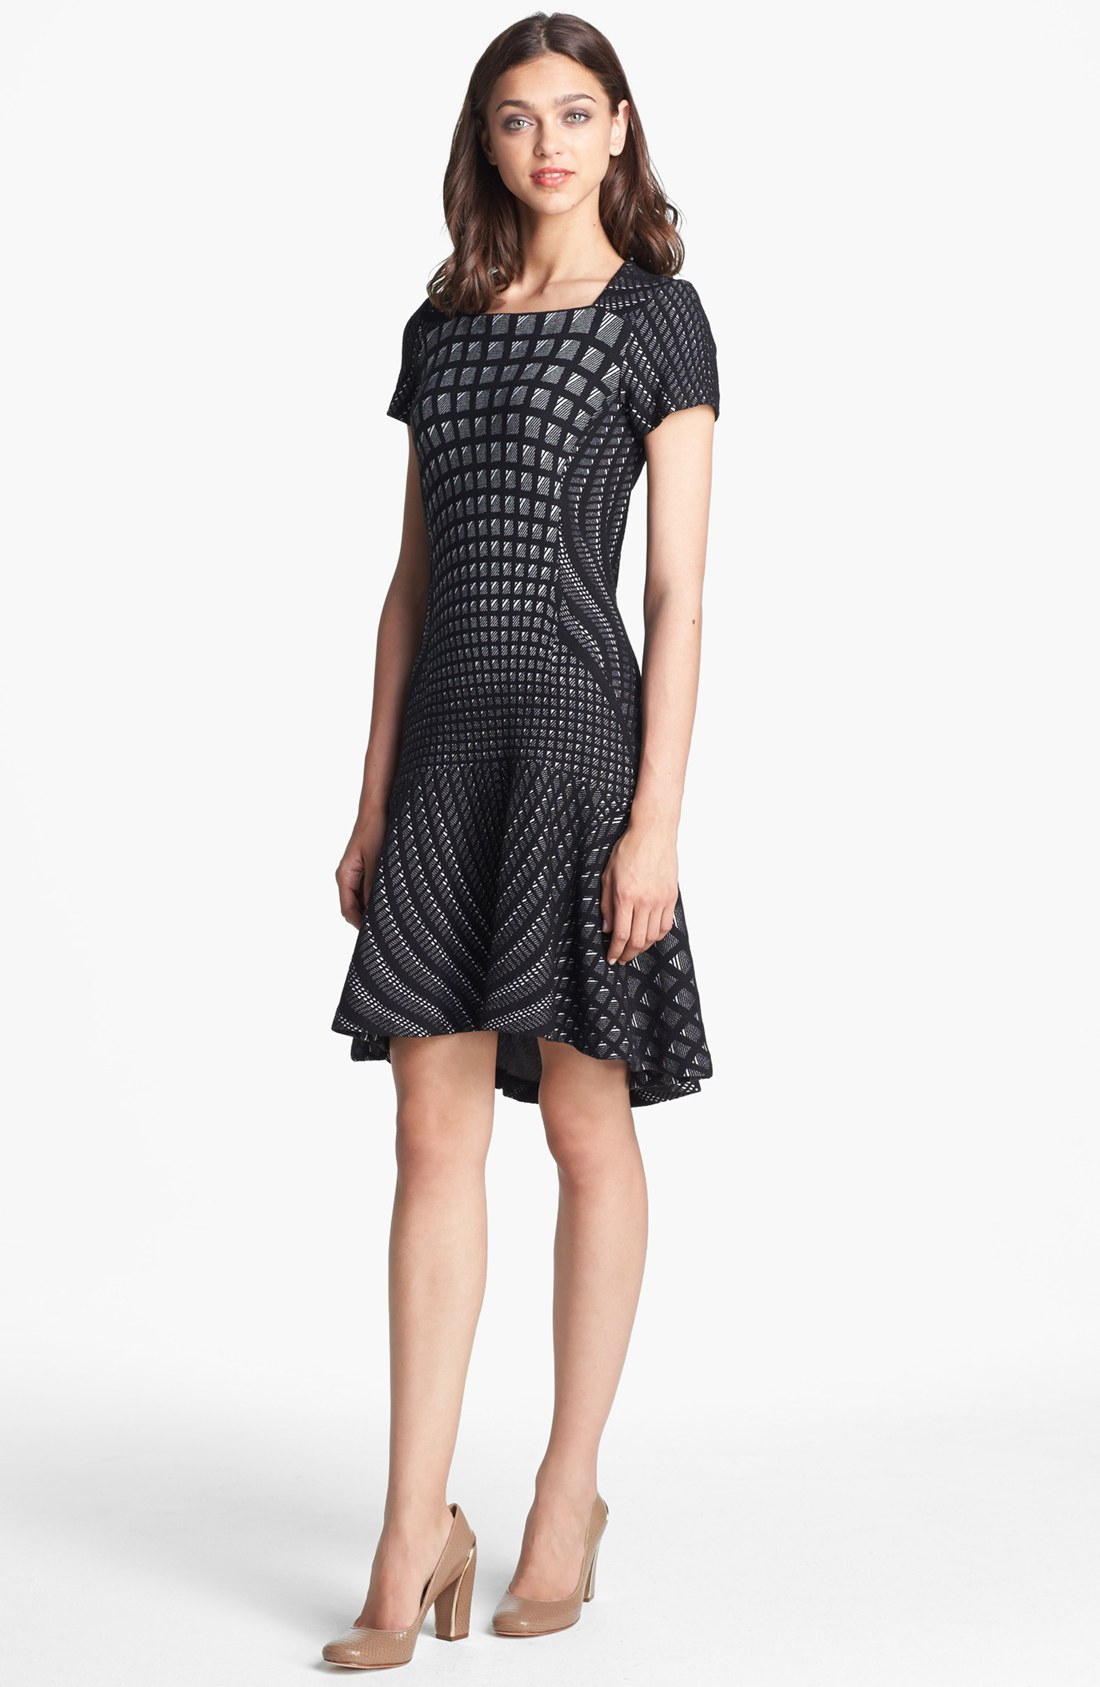 Diane von furstenberg hansine knit a line dress in black for Diane von furstenberg clothes